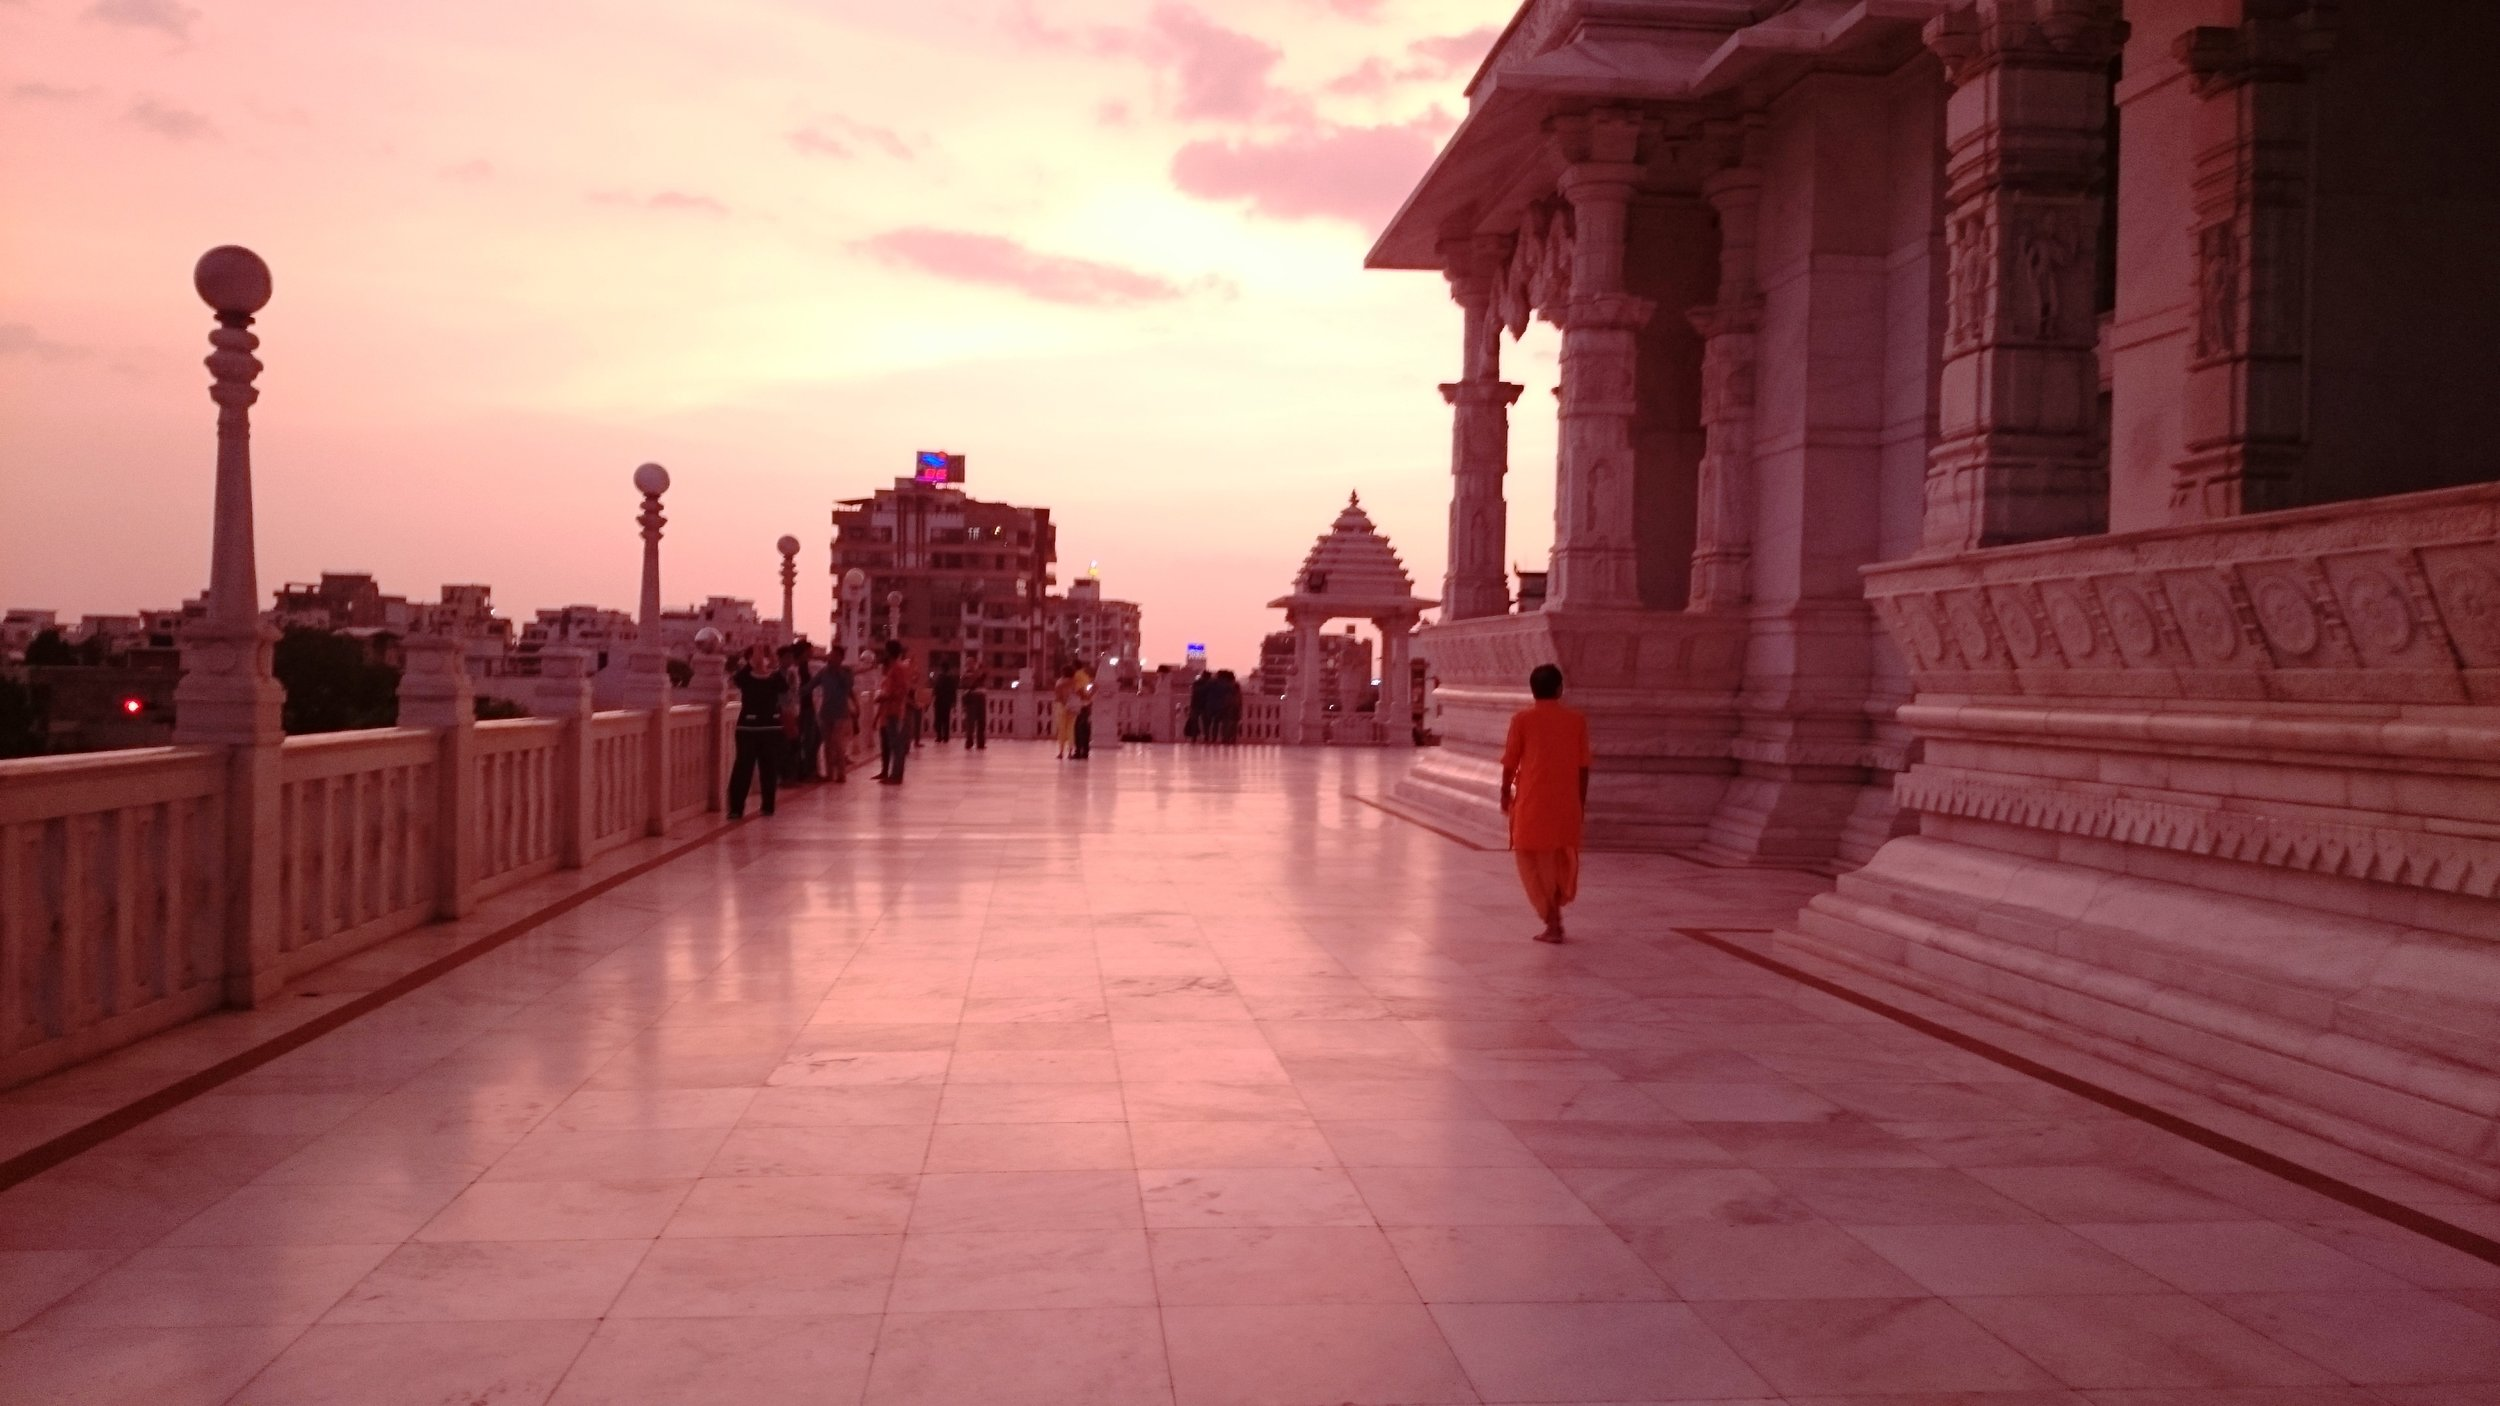 Sunset in Birla Mandir